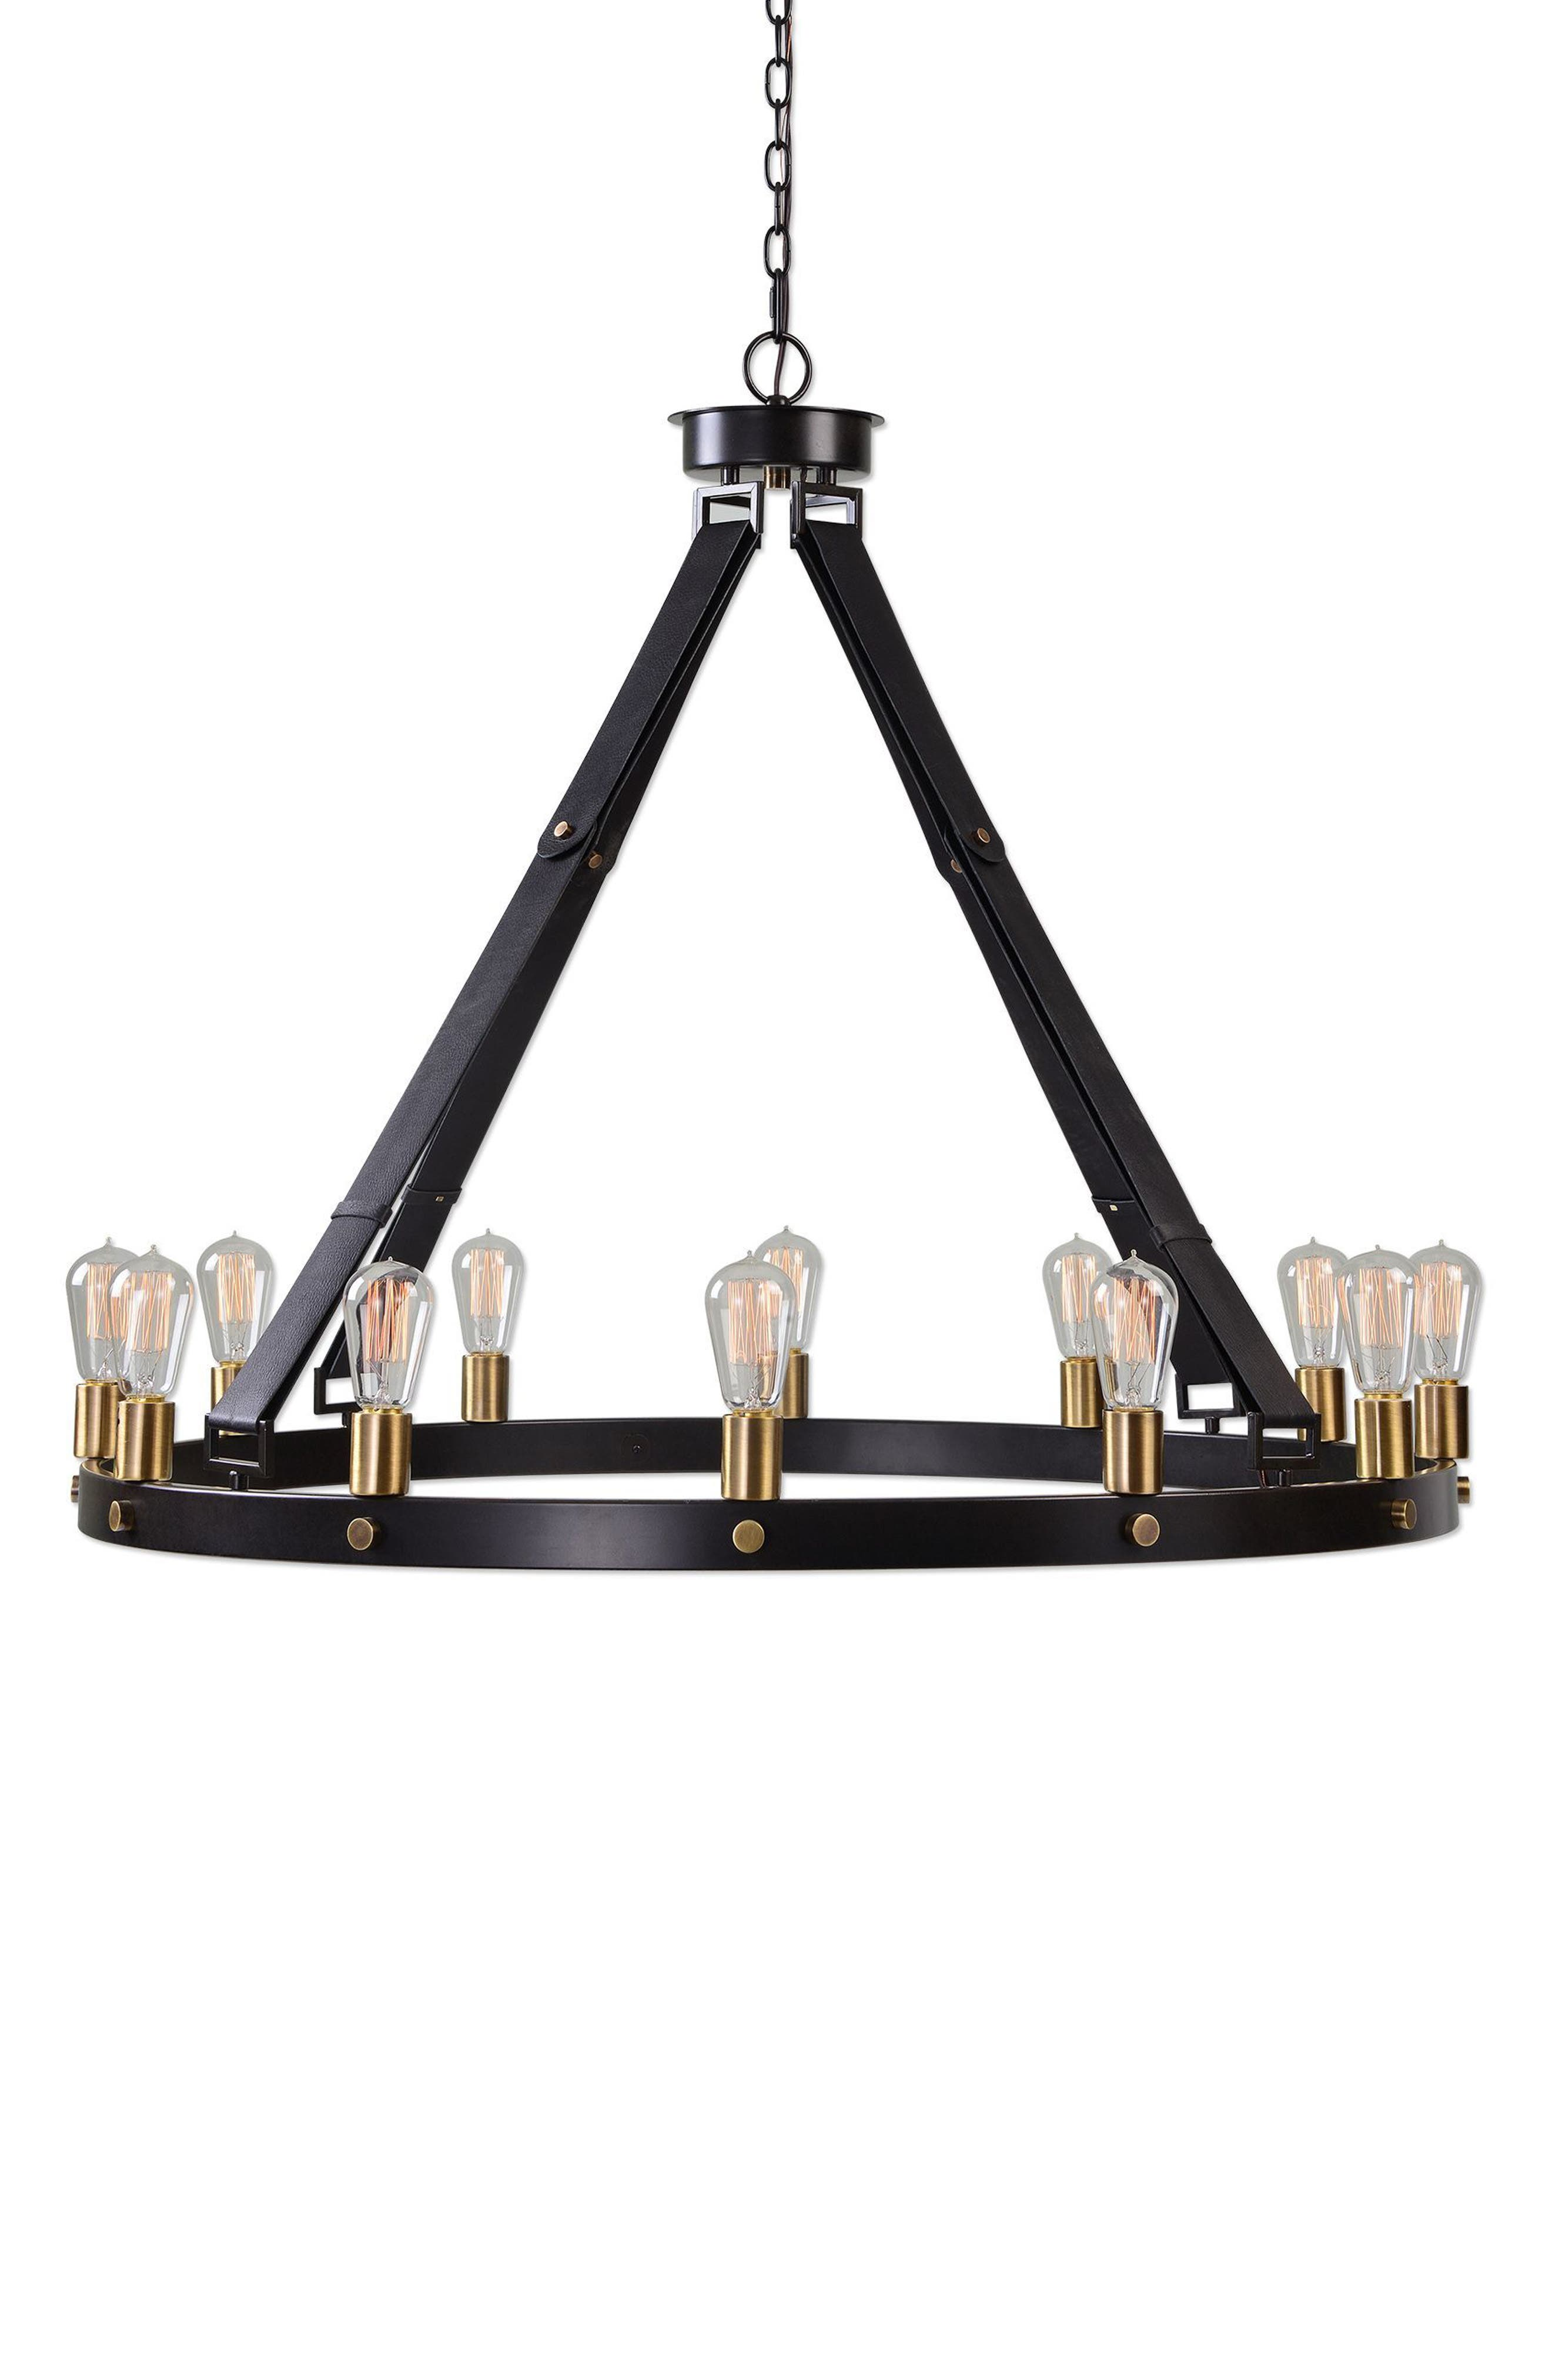 Main Image - Uttermost Marlow Chandelier